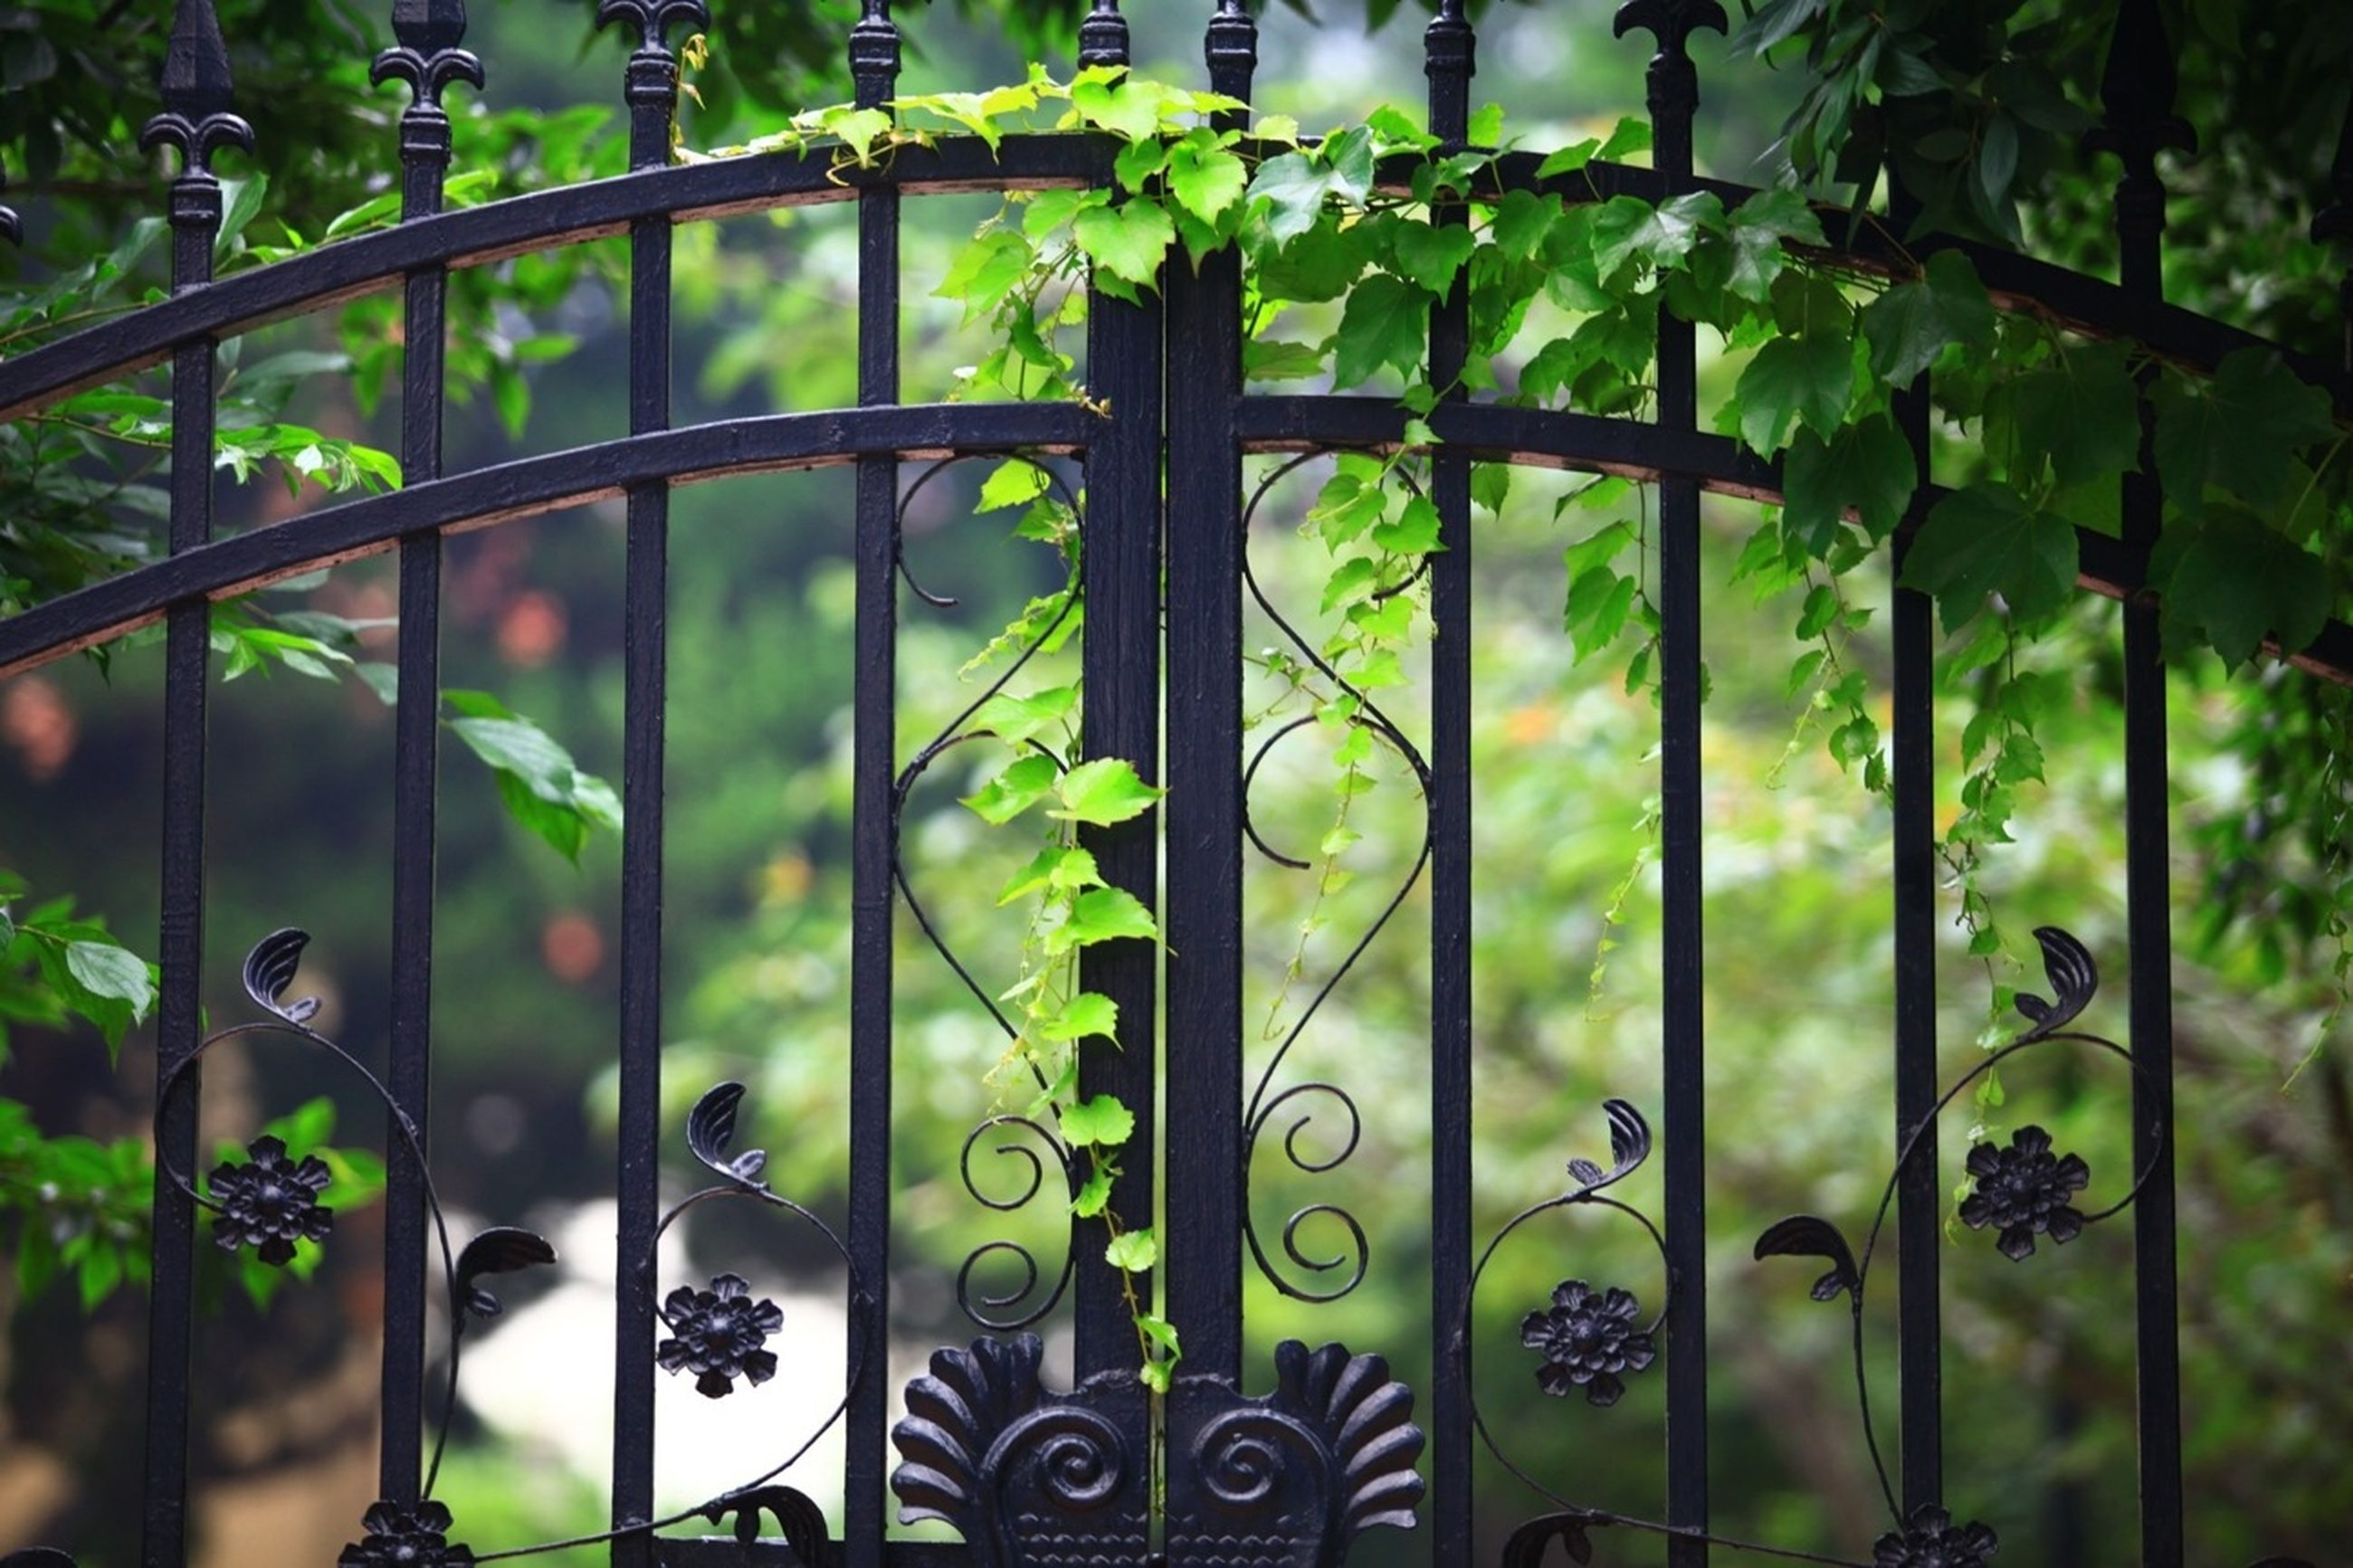 green color, fence, growth, tree, metal, plant, chainlink fence, park - man made space, protection, day, nature, safety, focus on foreground, indoors, leaf, close-up, gate, sunlight, pattern